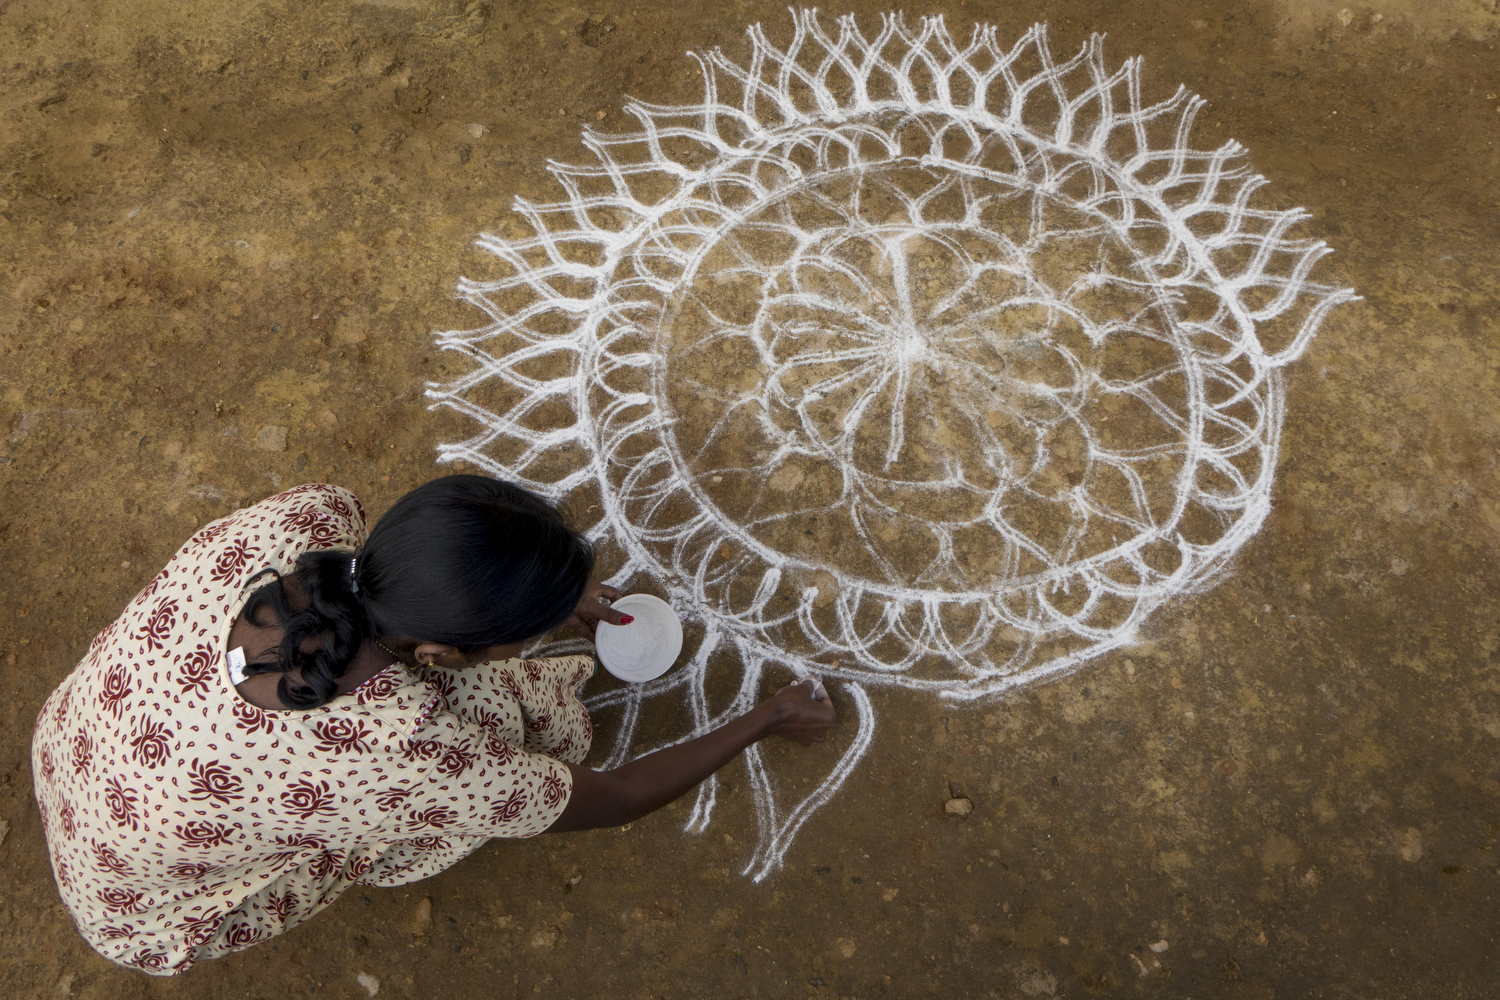 Karthika. S - Hindu women practice Rangoli on their front doorstep to add beauty to their homes. Rangoli is made from rice powder and starts with symmetrical lines and dots. From that base, women can pick colours and make their own designs.